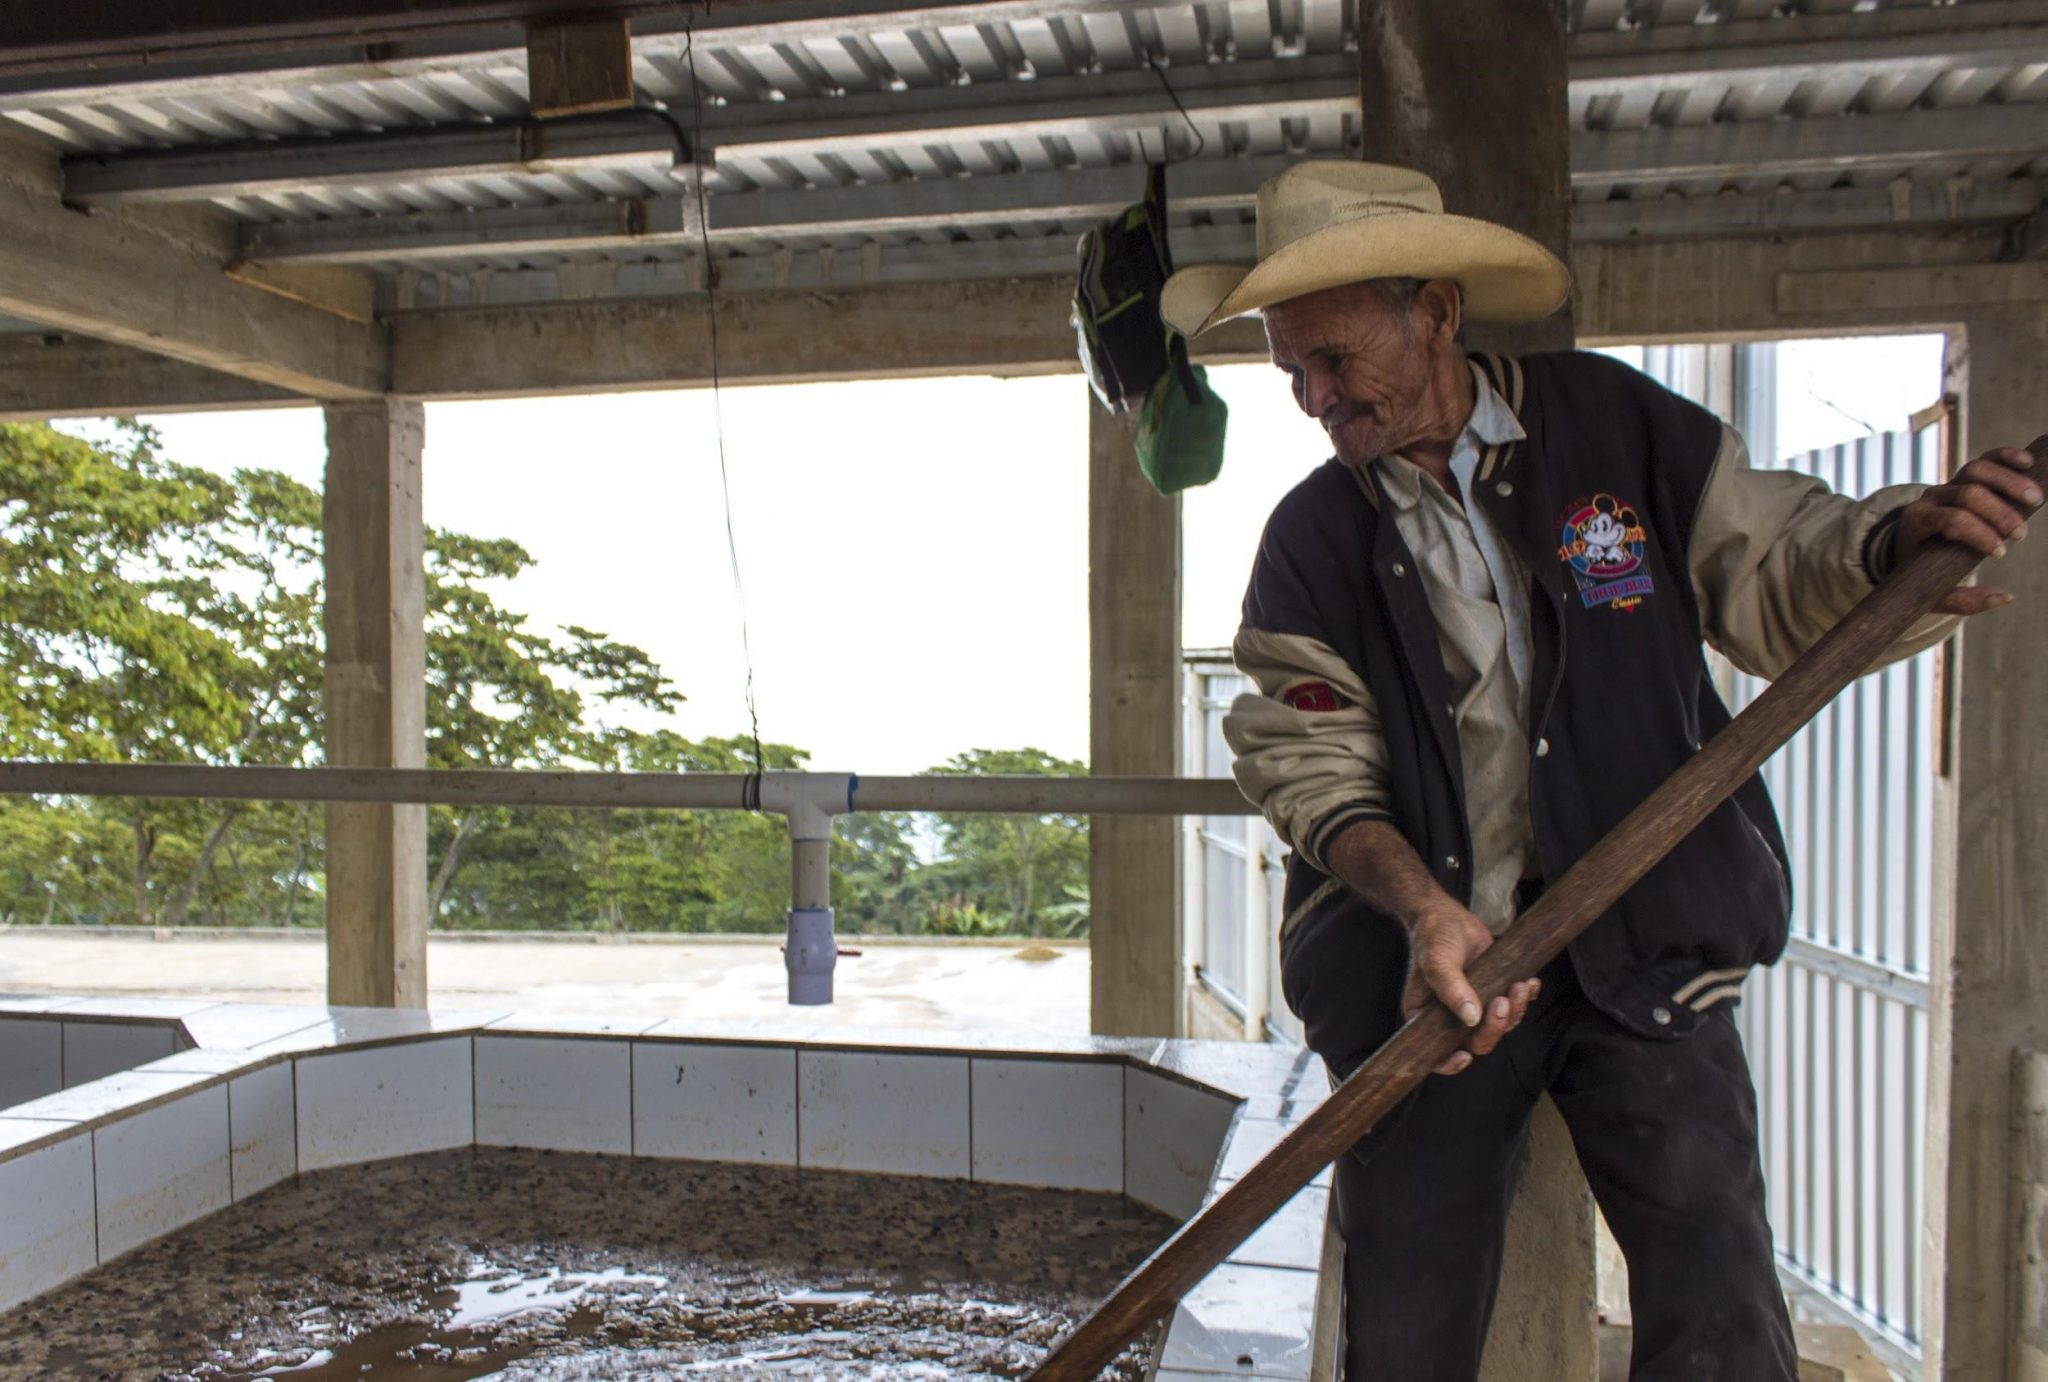 coffee farmer checks on fermenting coffee